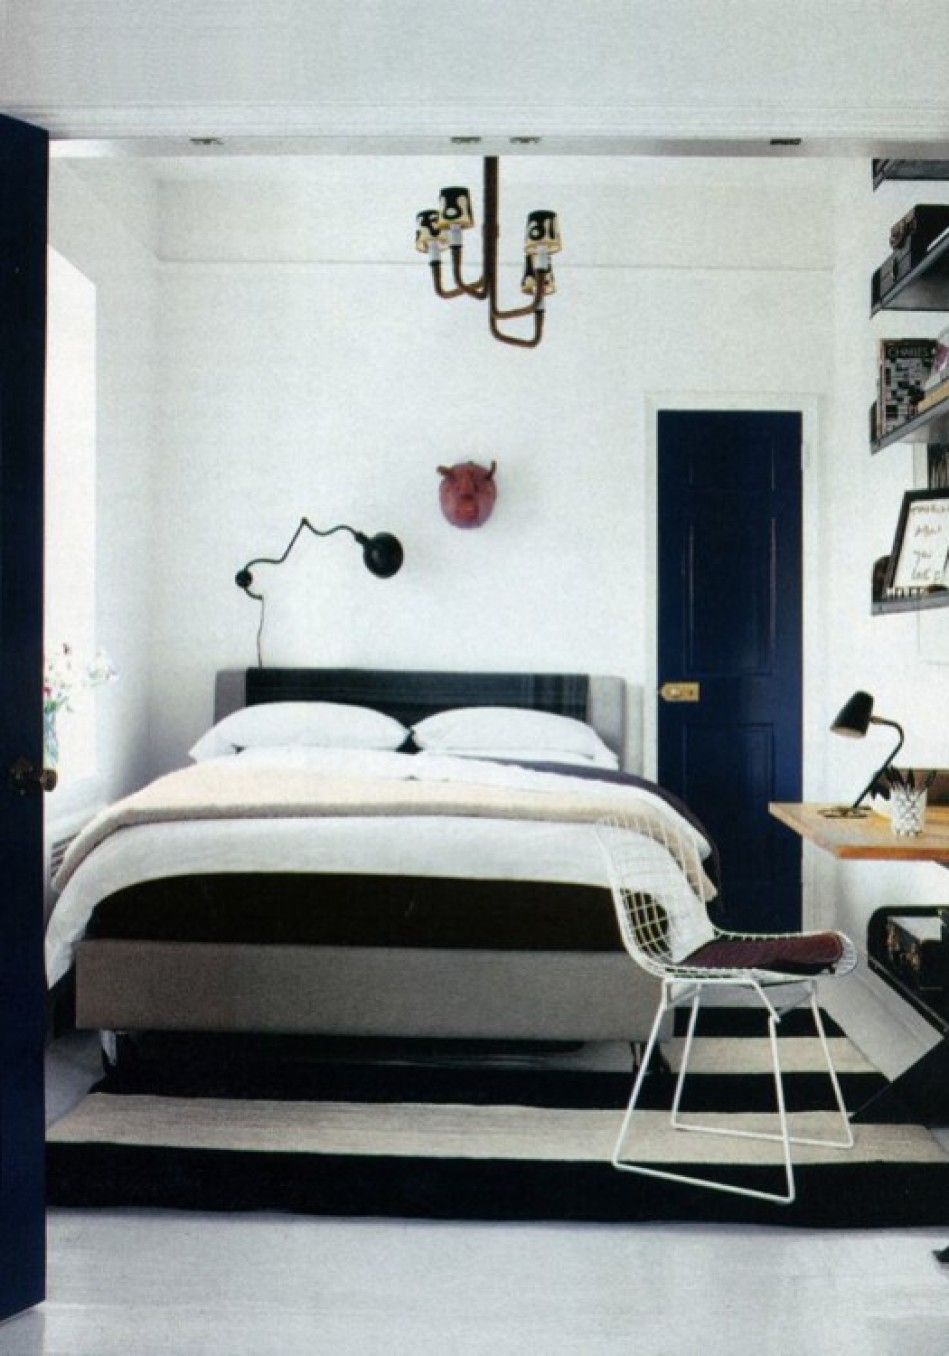 Nate Berkuss Manhattan Transfer - Nate berkus bedroom designs